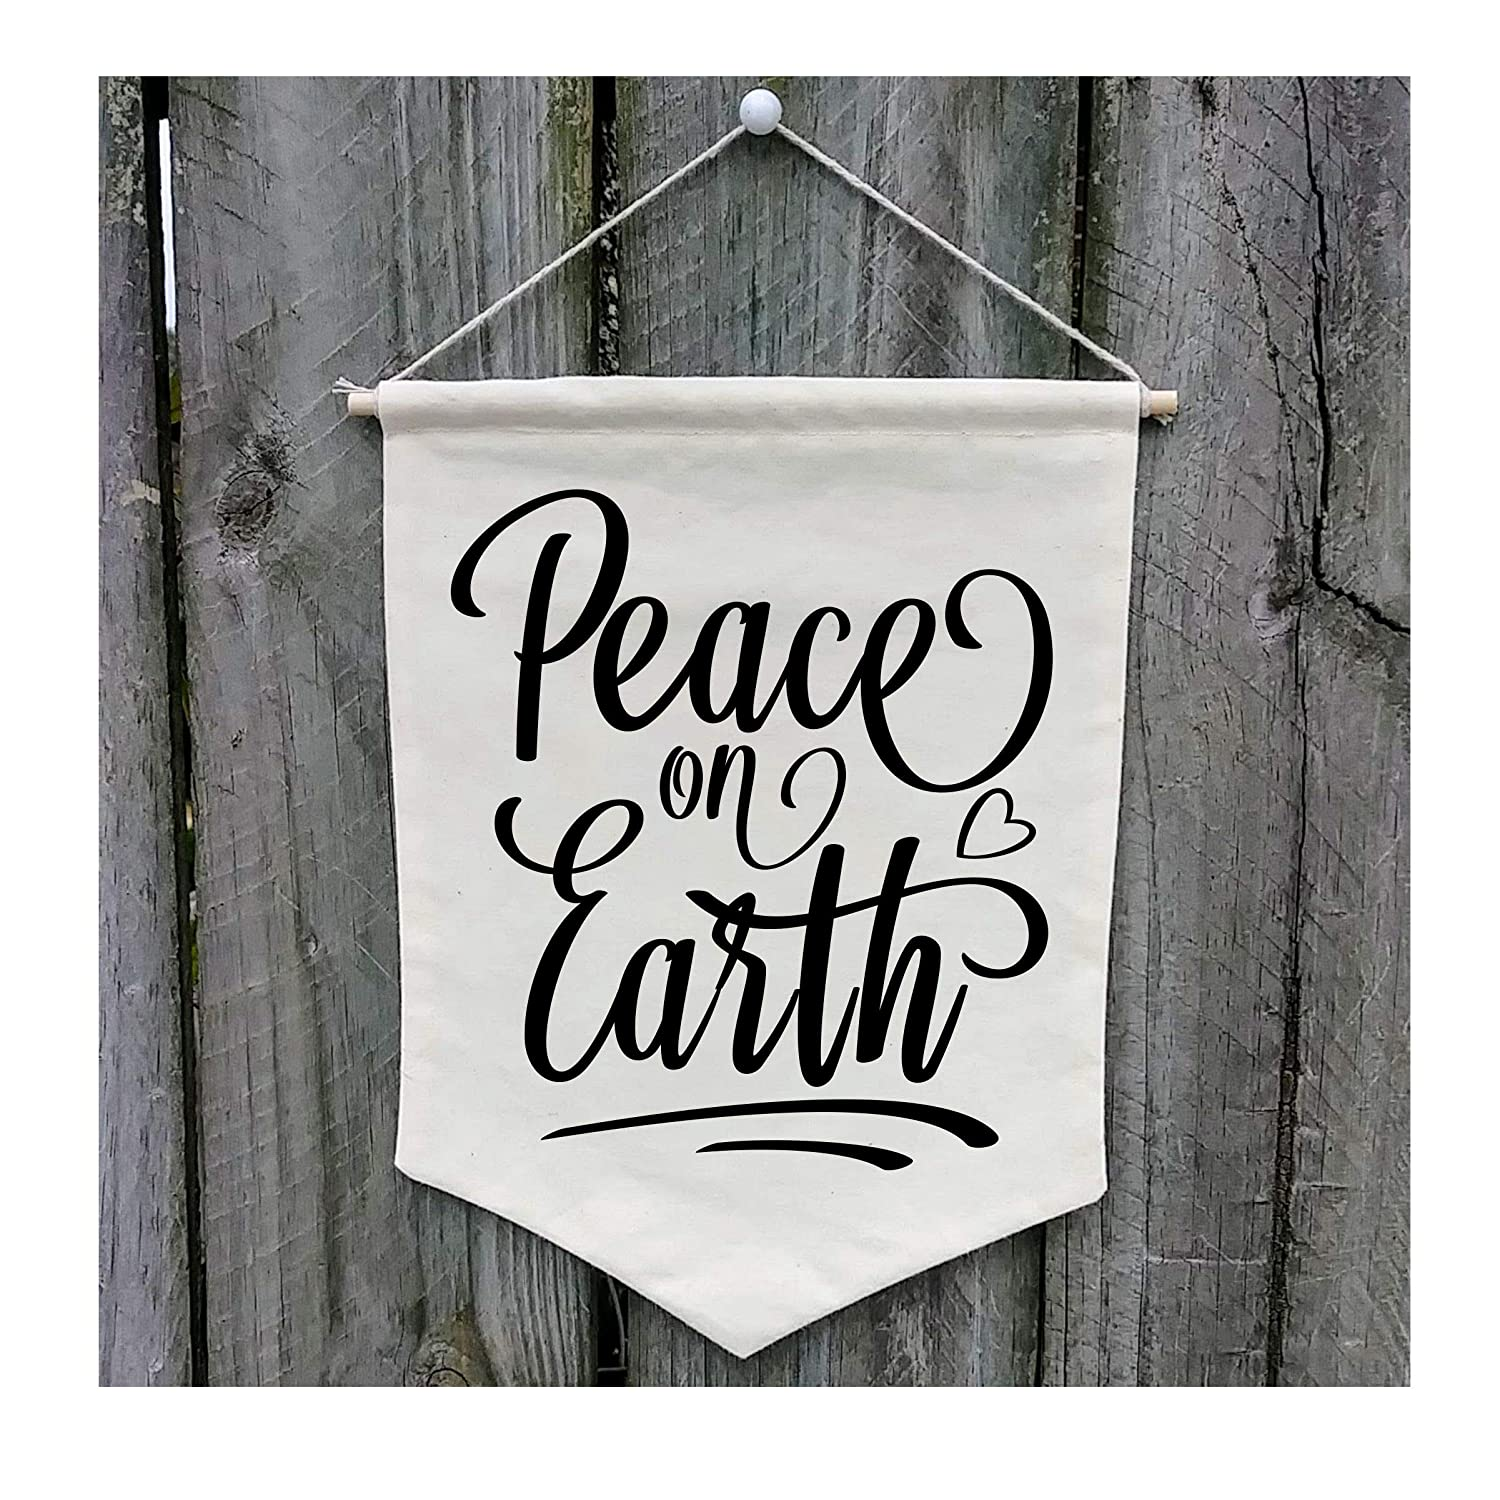 Peace on Earth Wall Banner - Customize WB403